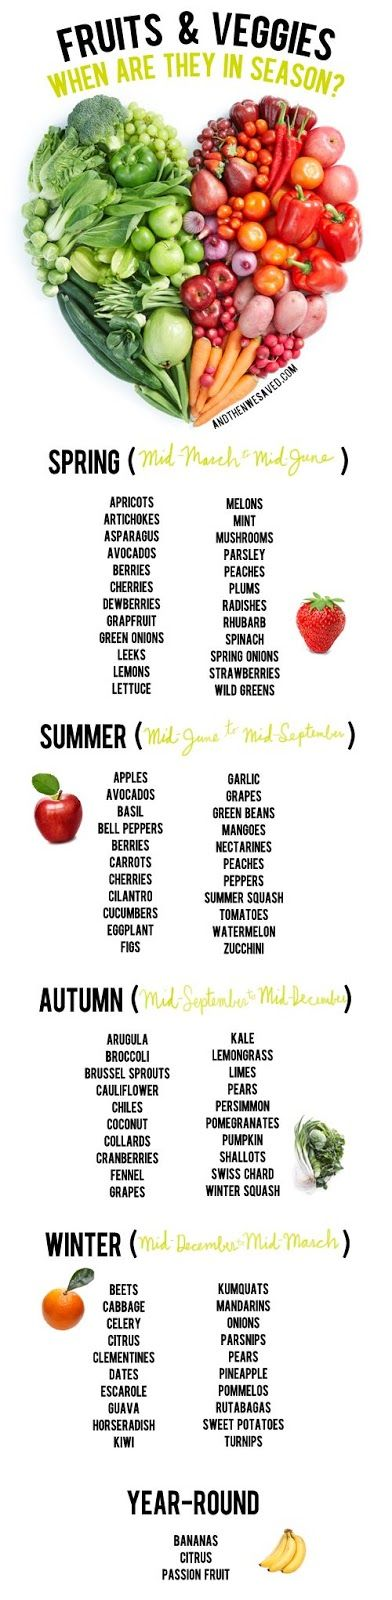 Great chart that explains what months to grow certain fruits and veggies